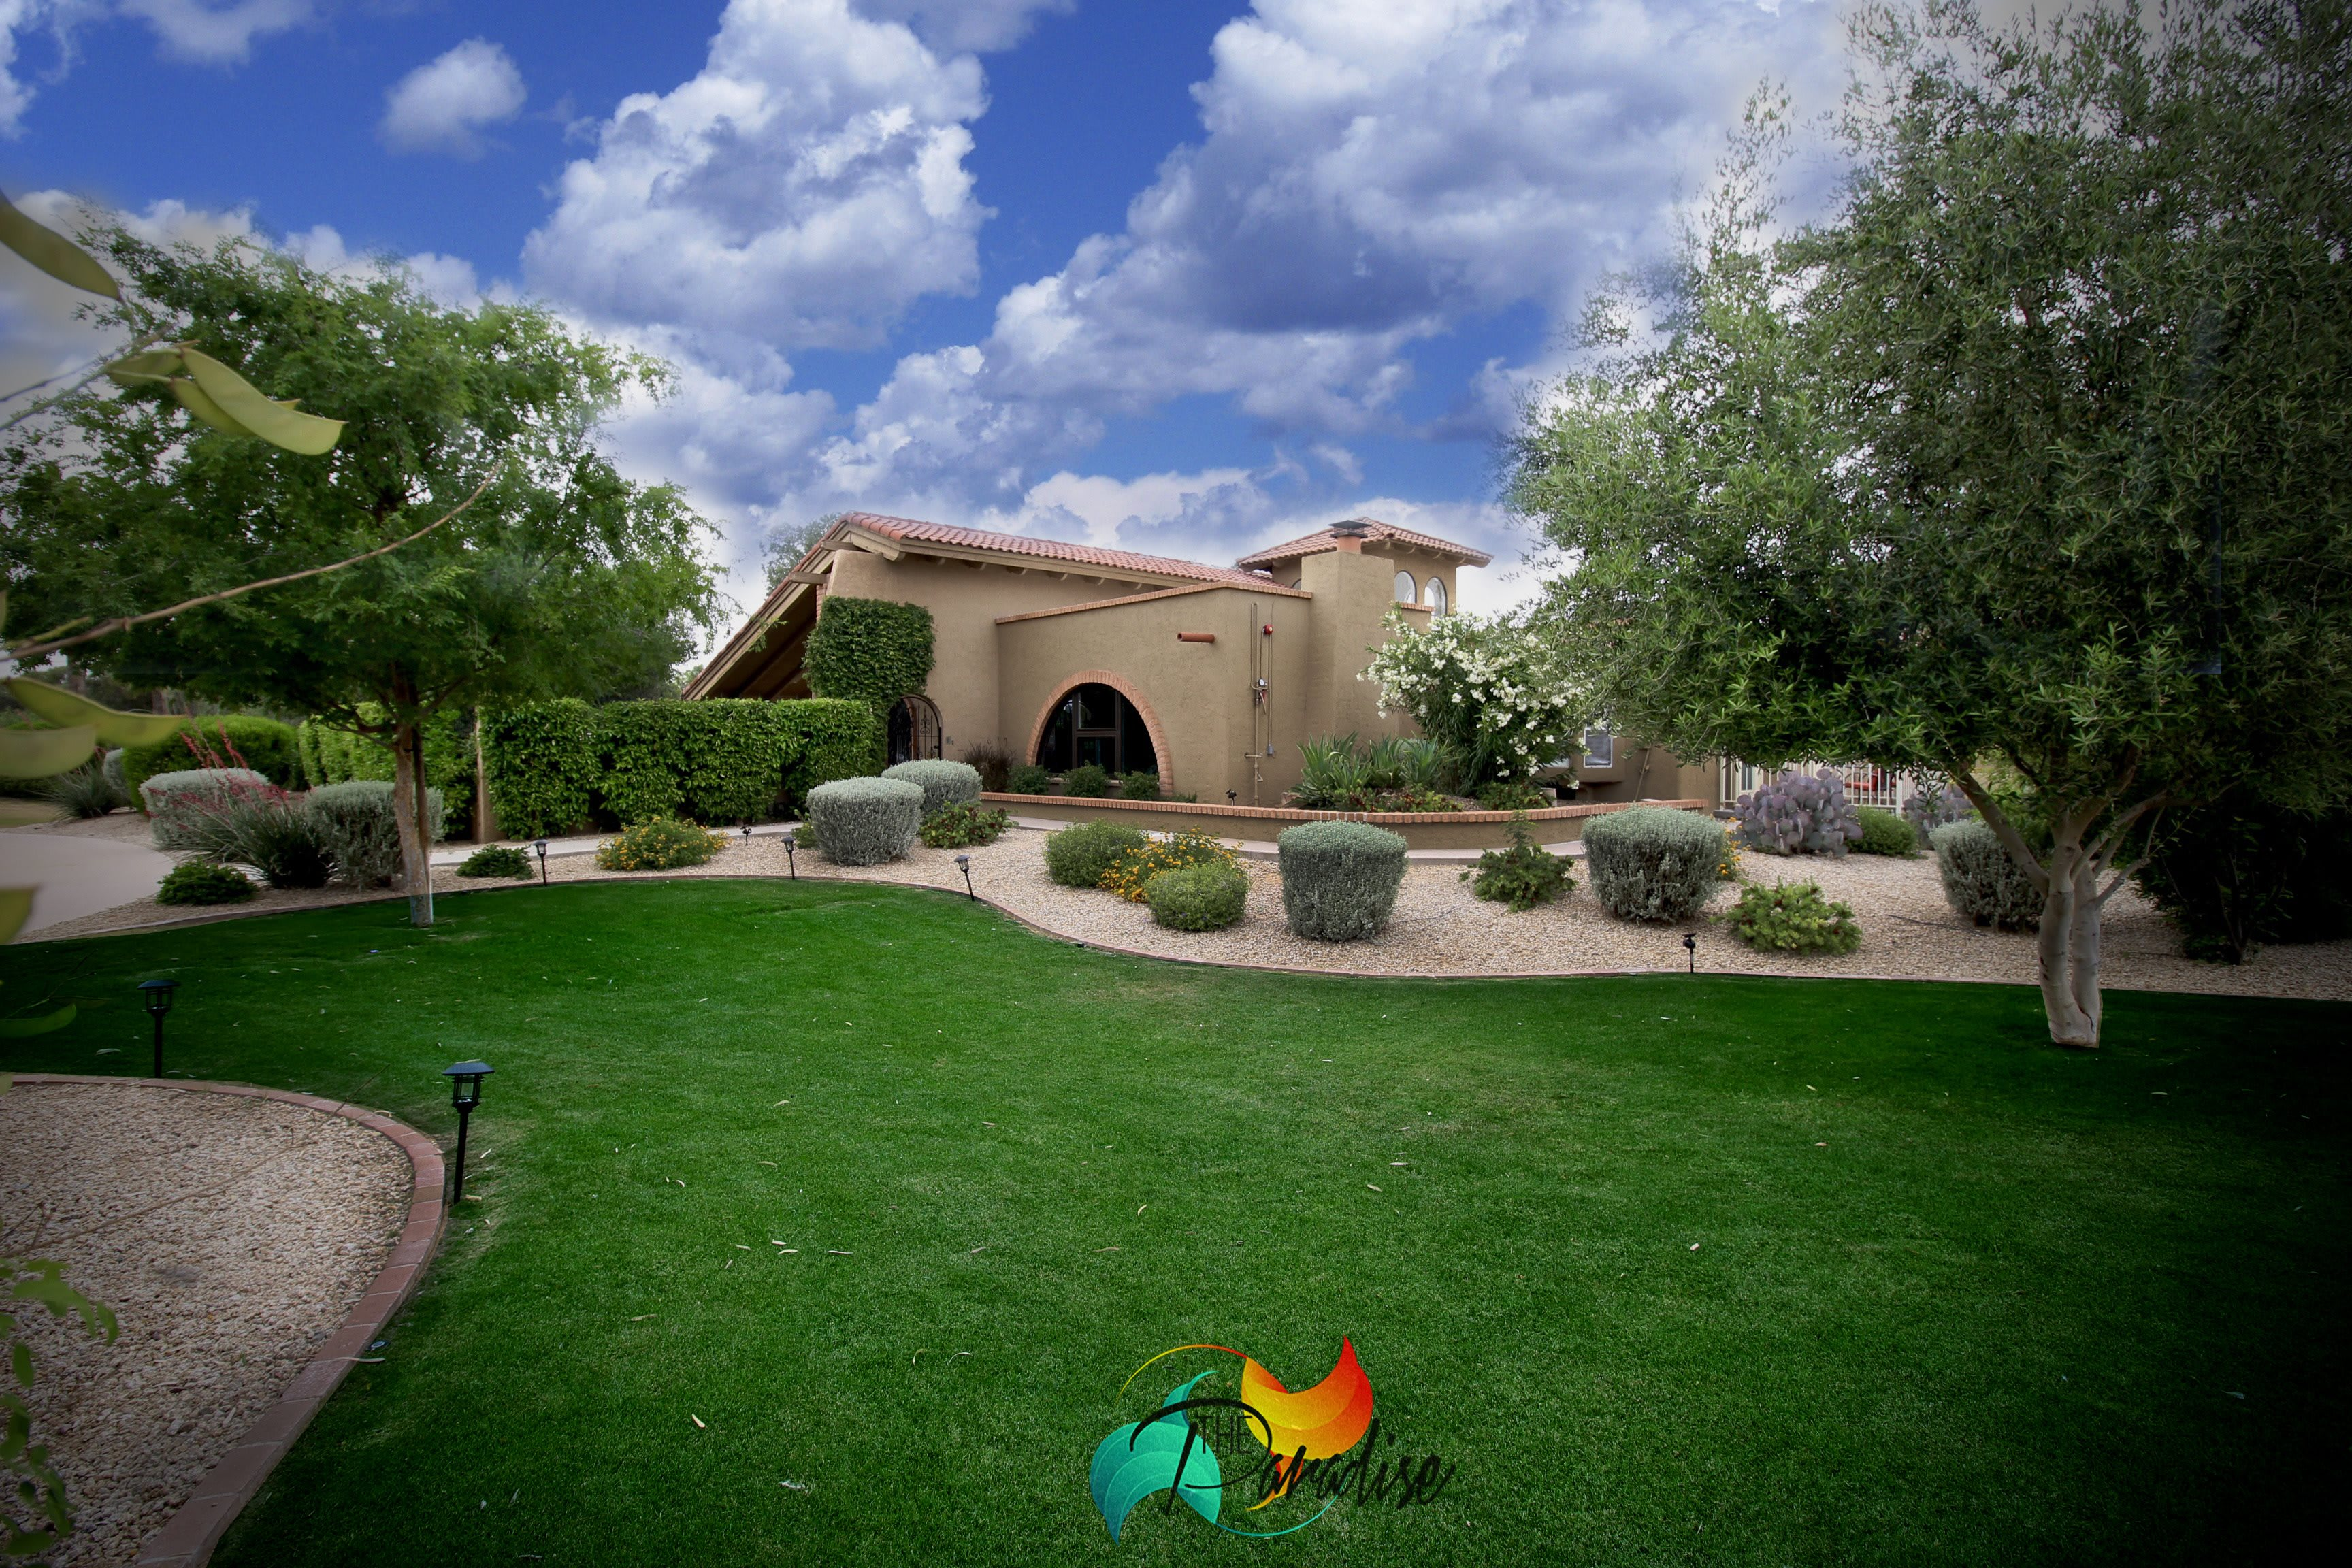 Photo 1 of The Paradise Assisted Living Home